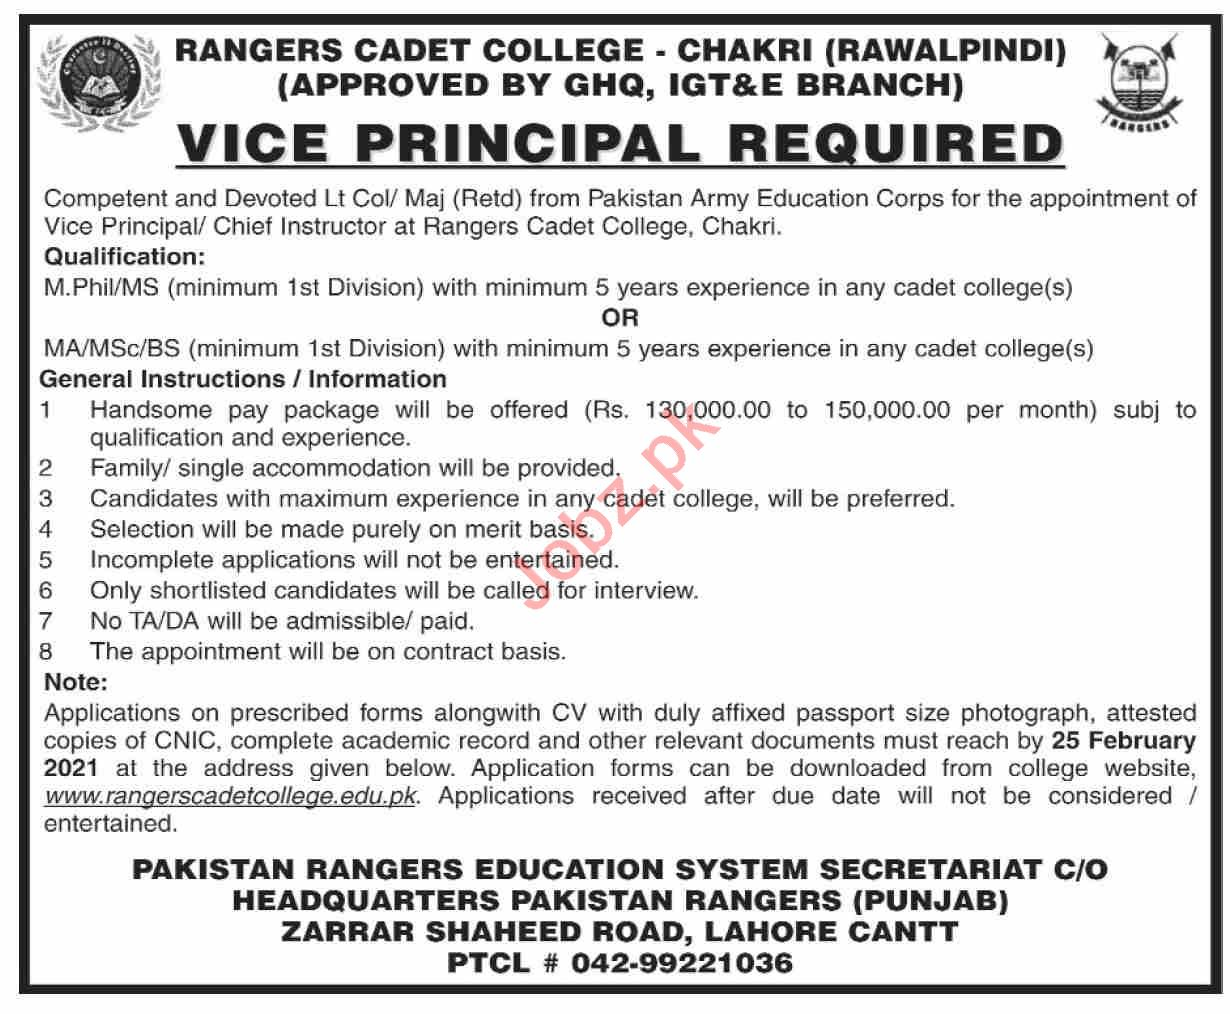 Rangers Cadet College Chakri Jobs 2021 for Vice Principal